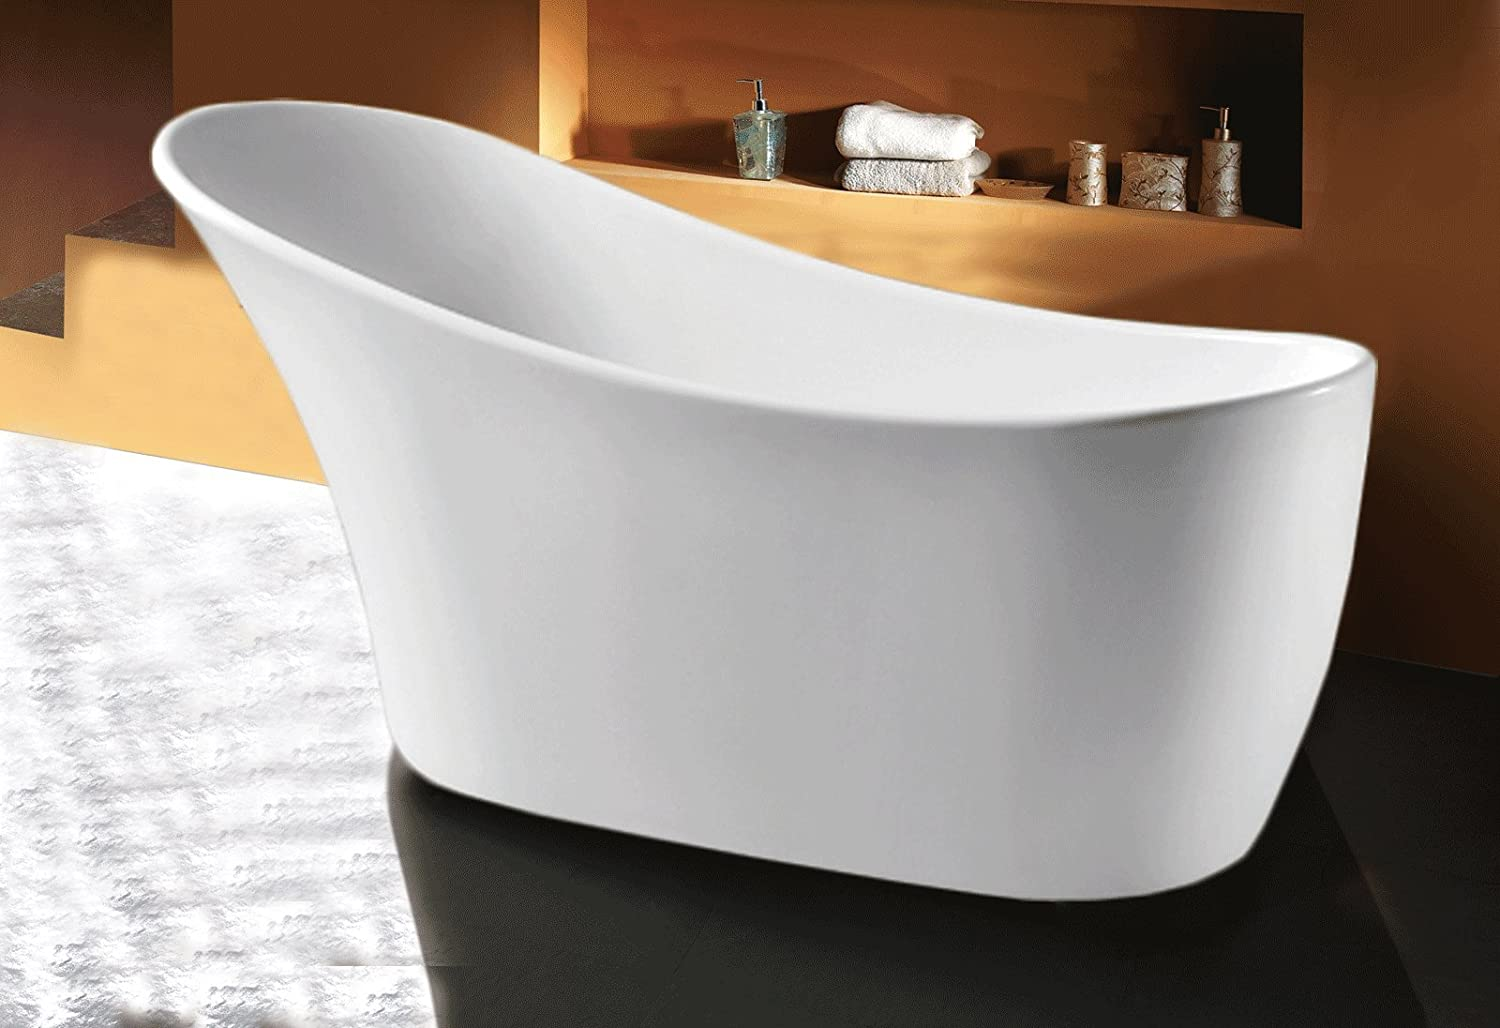 Top 10 best free standing acrylic bathtubs 2016 2017 on for What is the best bathtub